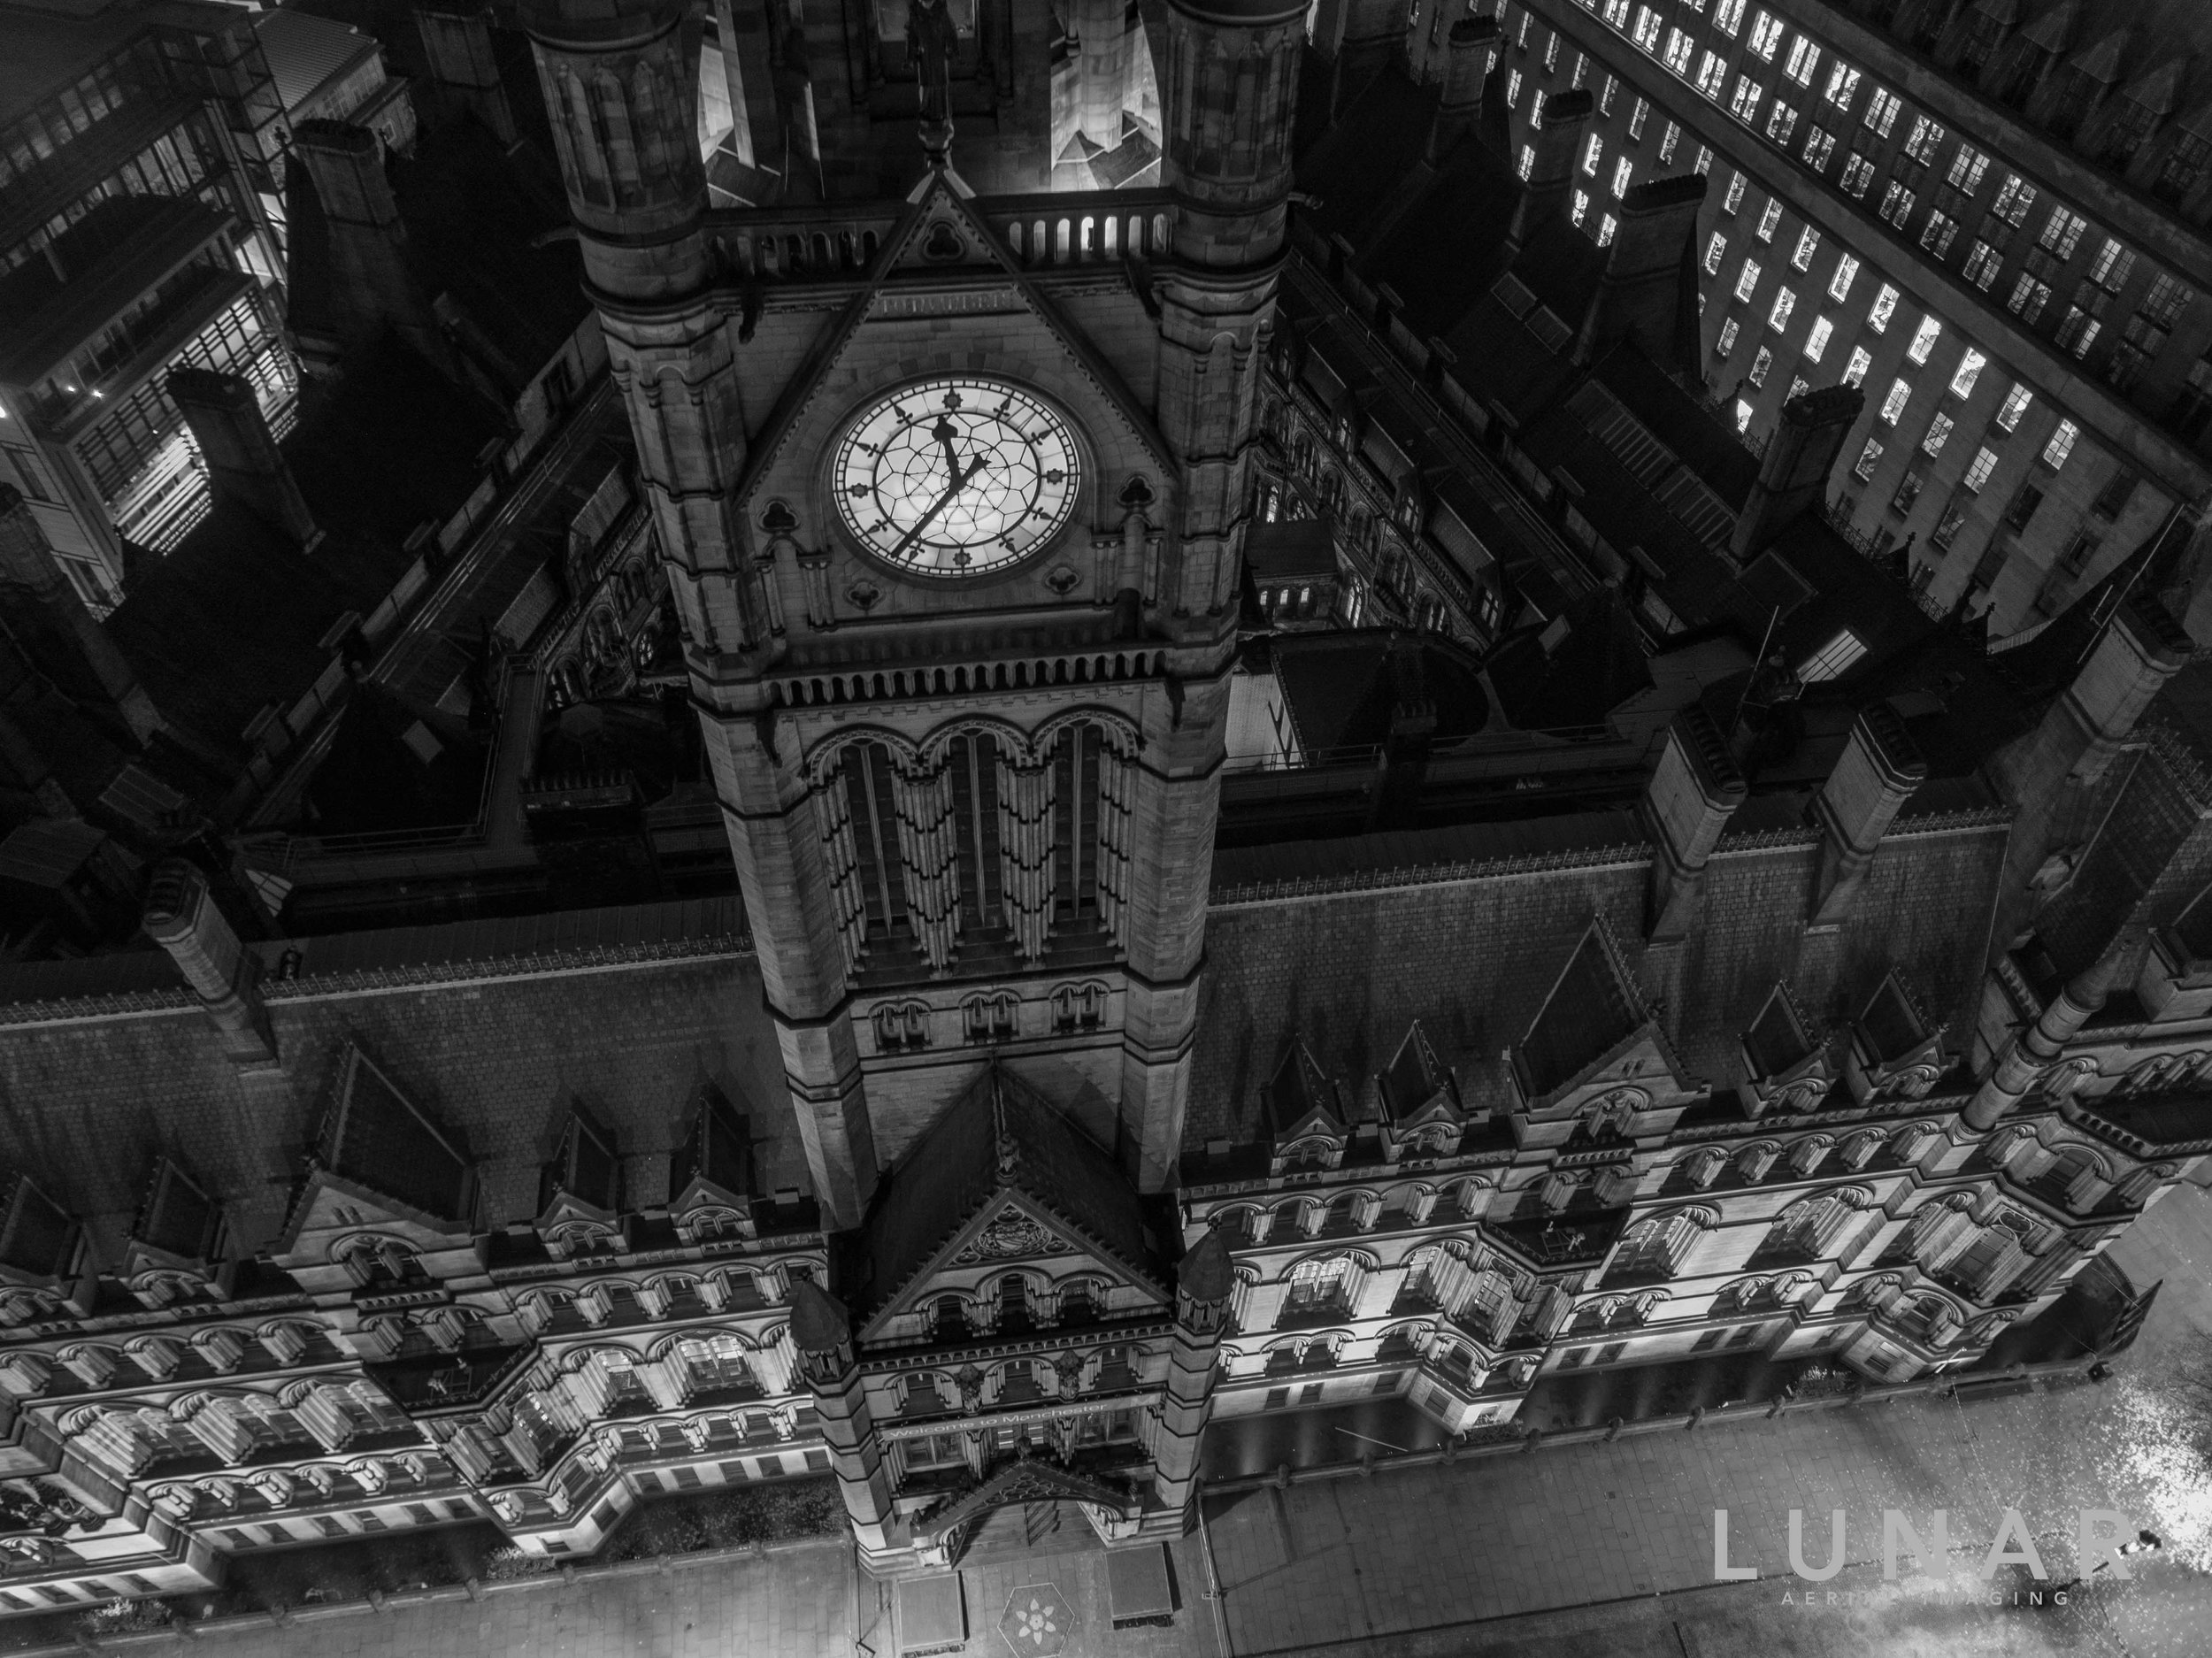 manchester town hall at ngiht aerial photo.jpg